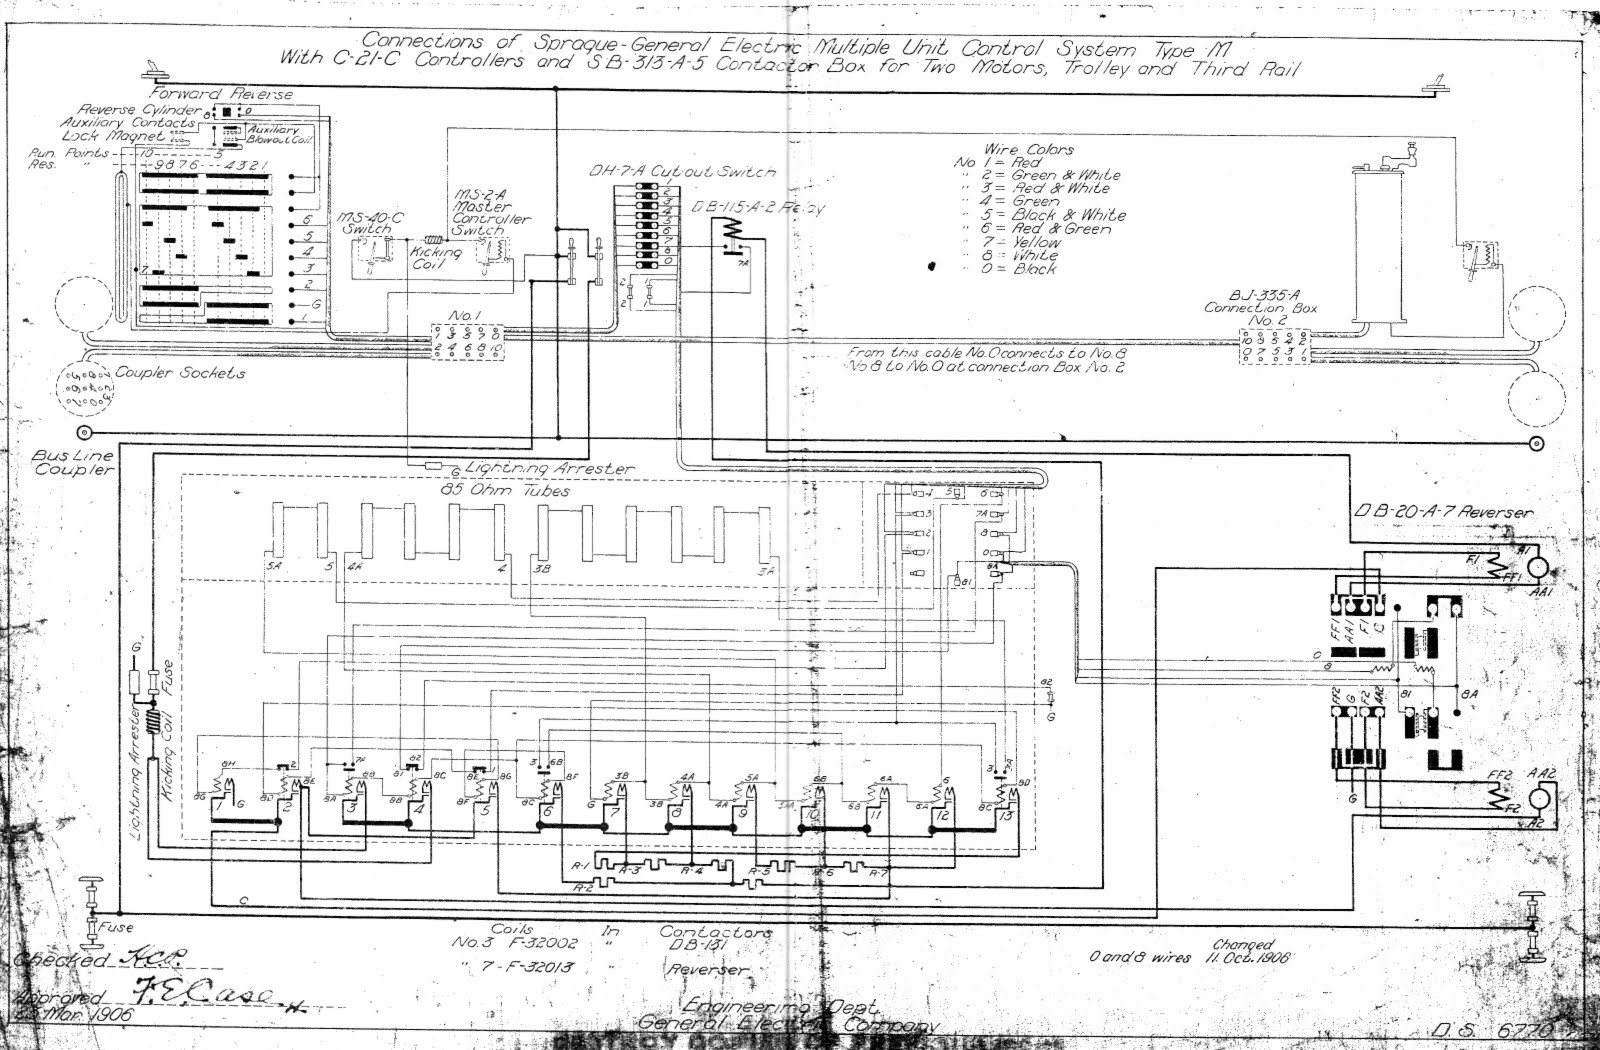 wiring diagram for 1972 chevy truck – ireleast, Wiring diagram